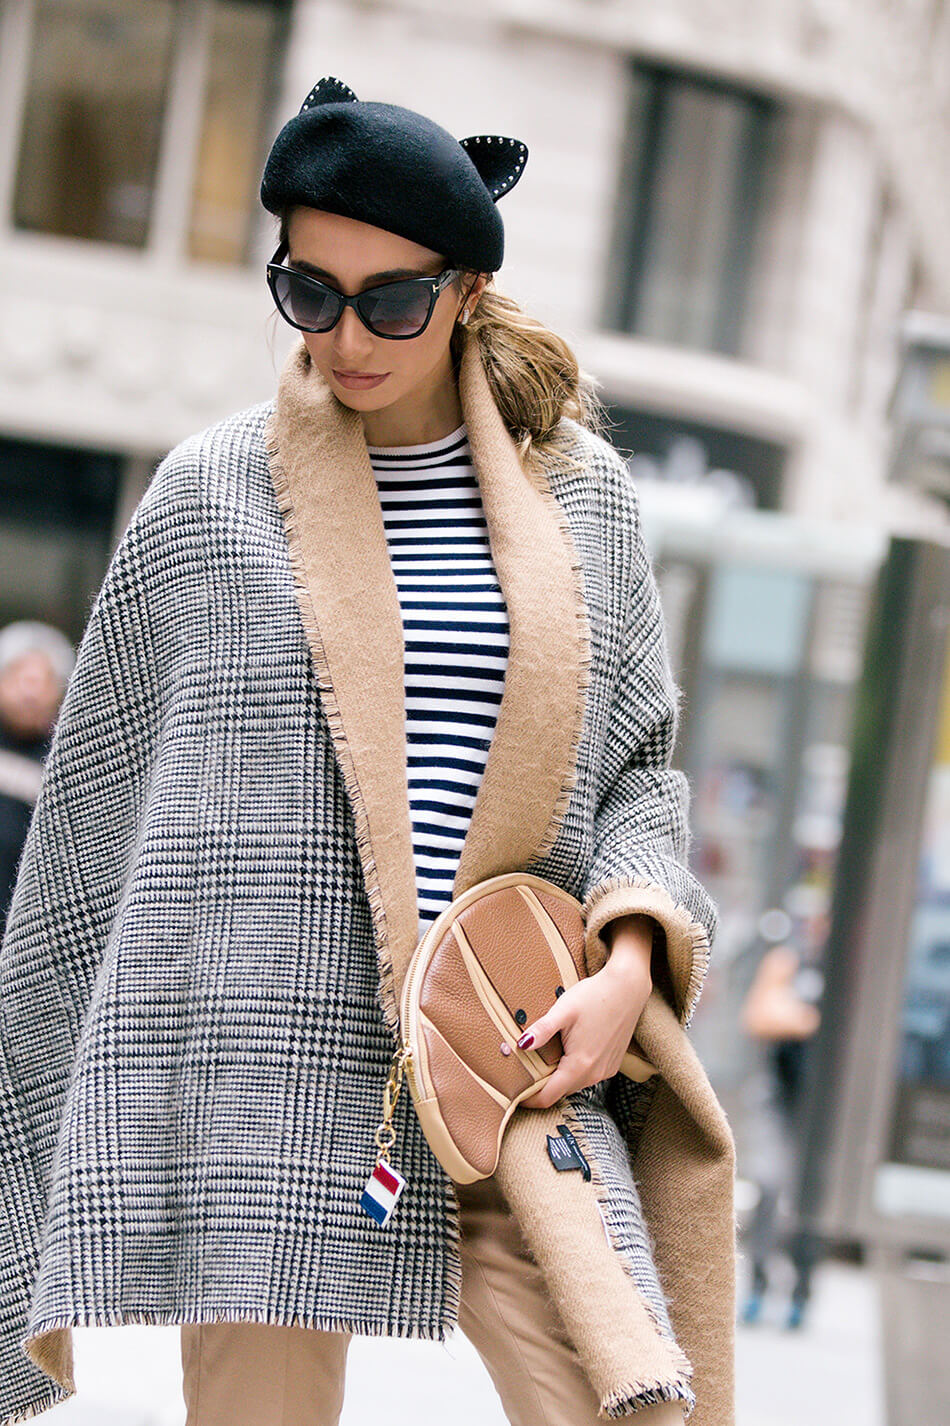 Classic French chic style for Fall.